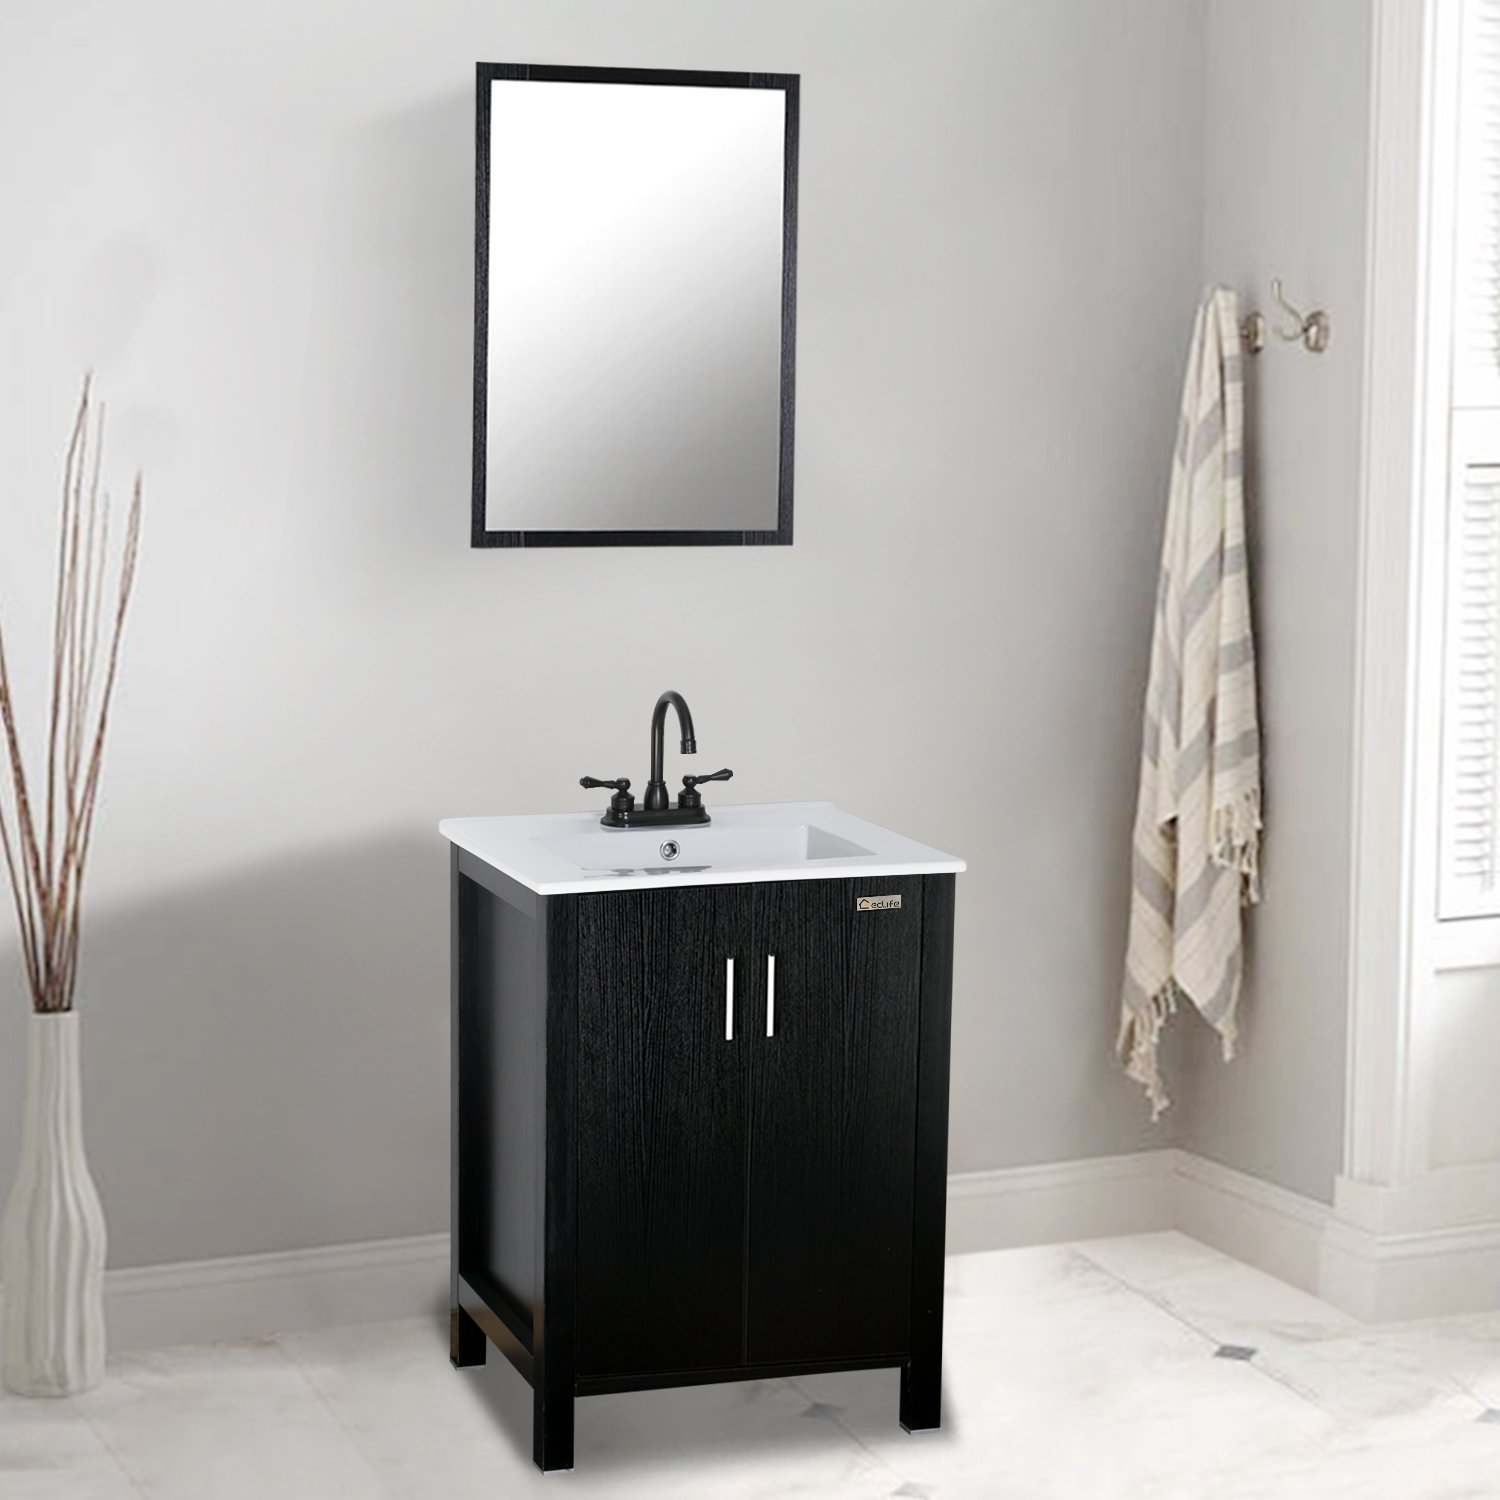 Eclife 24'' Modern Bathroom Vanity and Sink Combo Stand Cabinet and White Ceramic Vessel Sink Top & CUPC&NSF&AB1953 Solid Brass Faucet & Pop Up Drain DR03B06 by Eclife